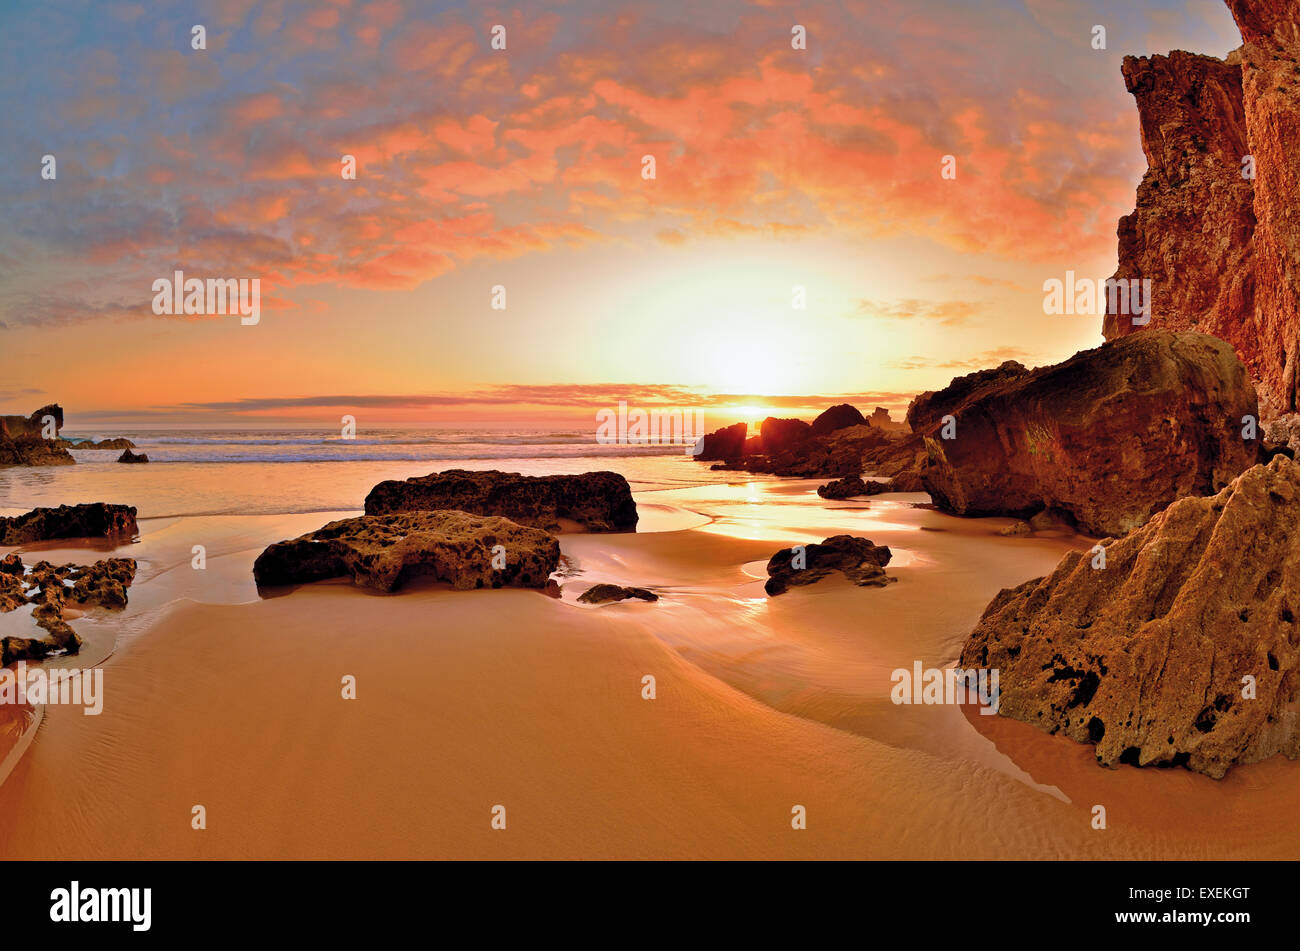 Portugal, Algarve: Scenic sunset at rocky beach Praia do Tonel in Sagres - Stock Image